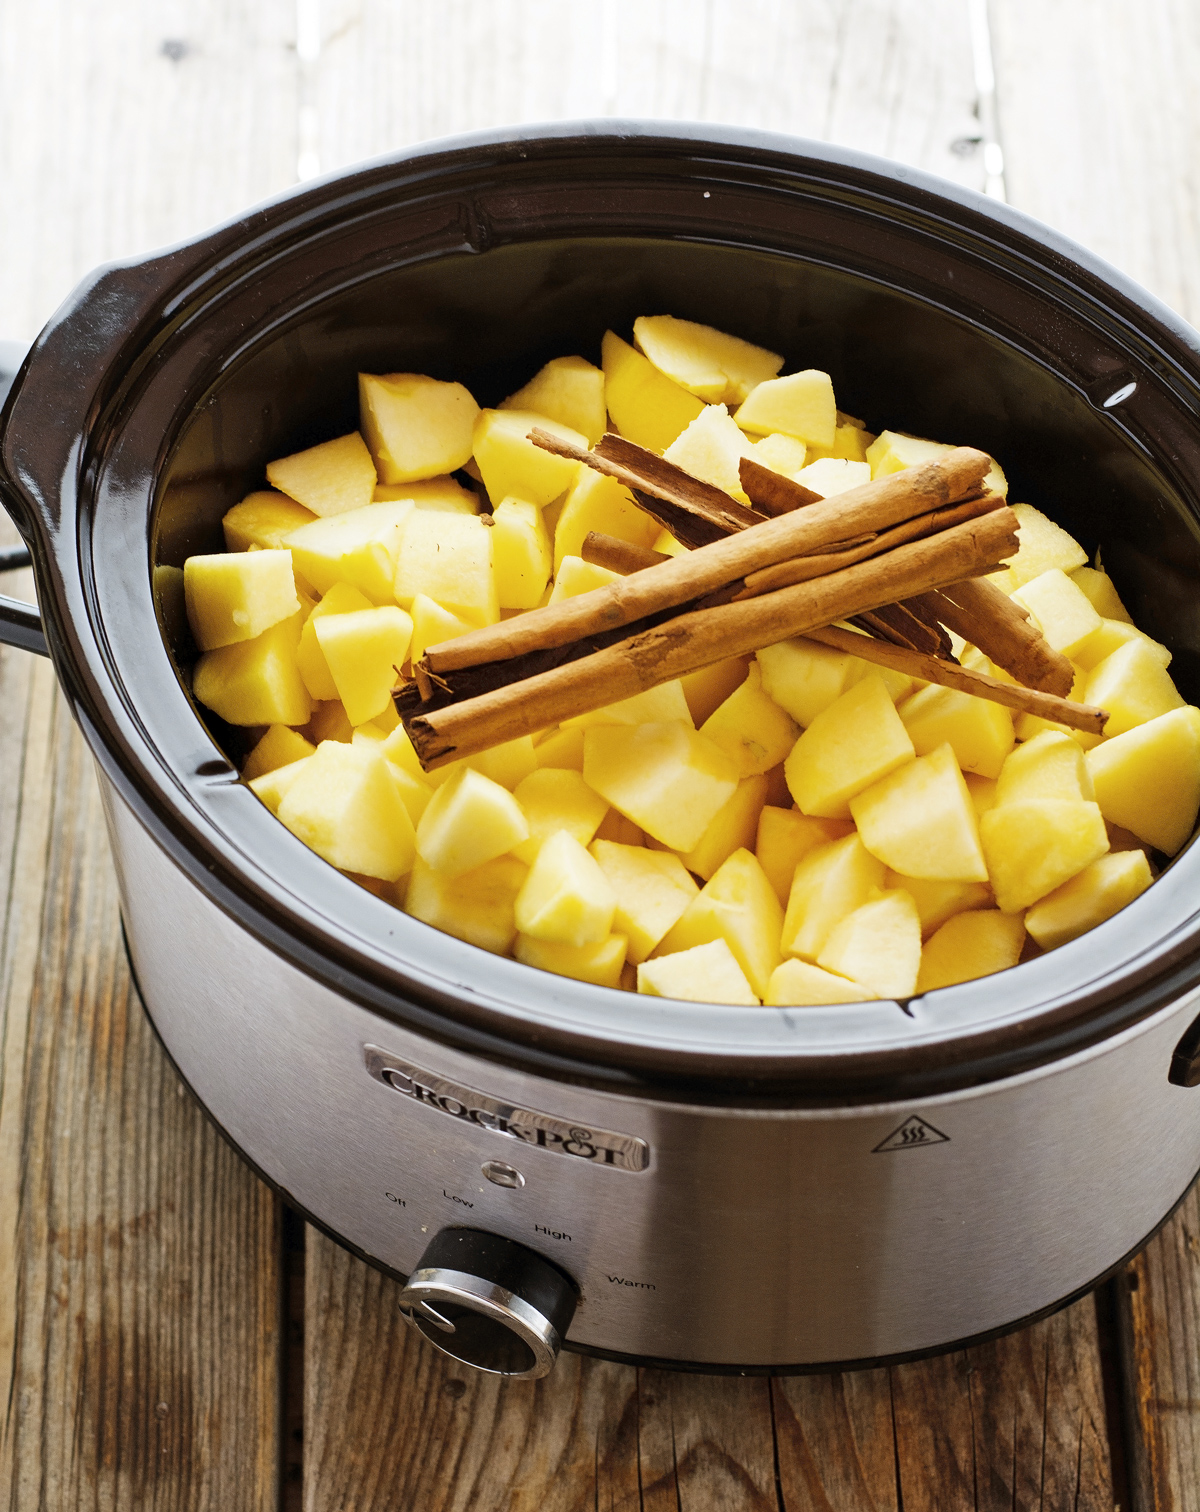 Crock Pot Cinnamon Applesauce (No Added Sugar)